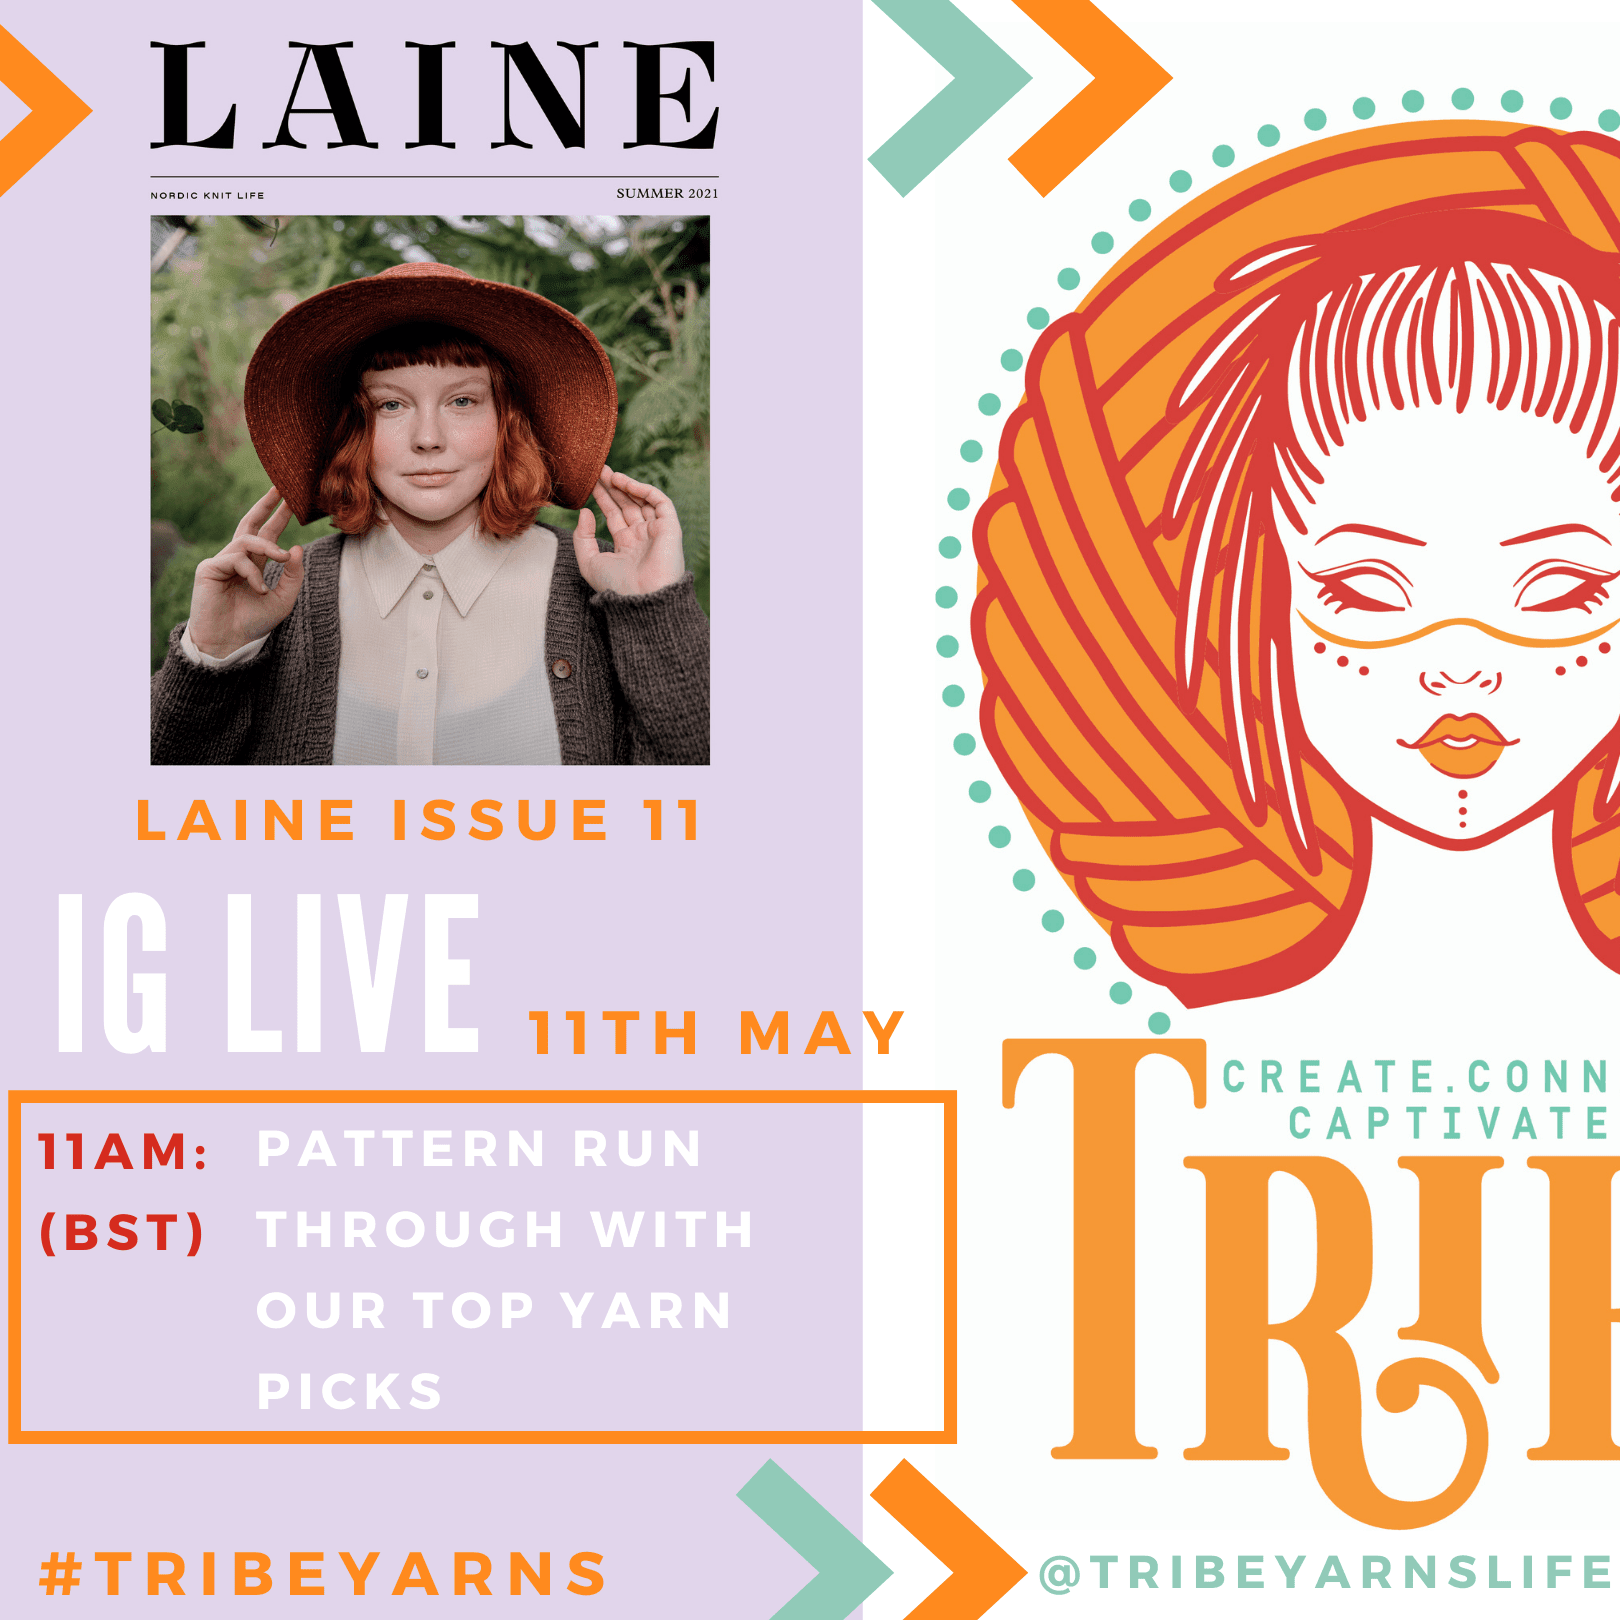 Laine Issue 11 - Instagram Live! tribeyarns Event